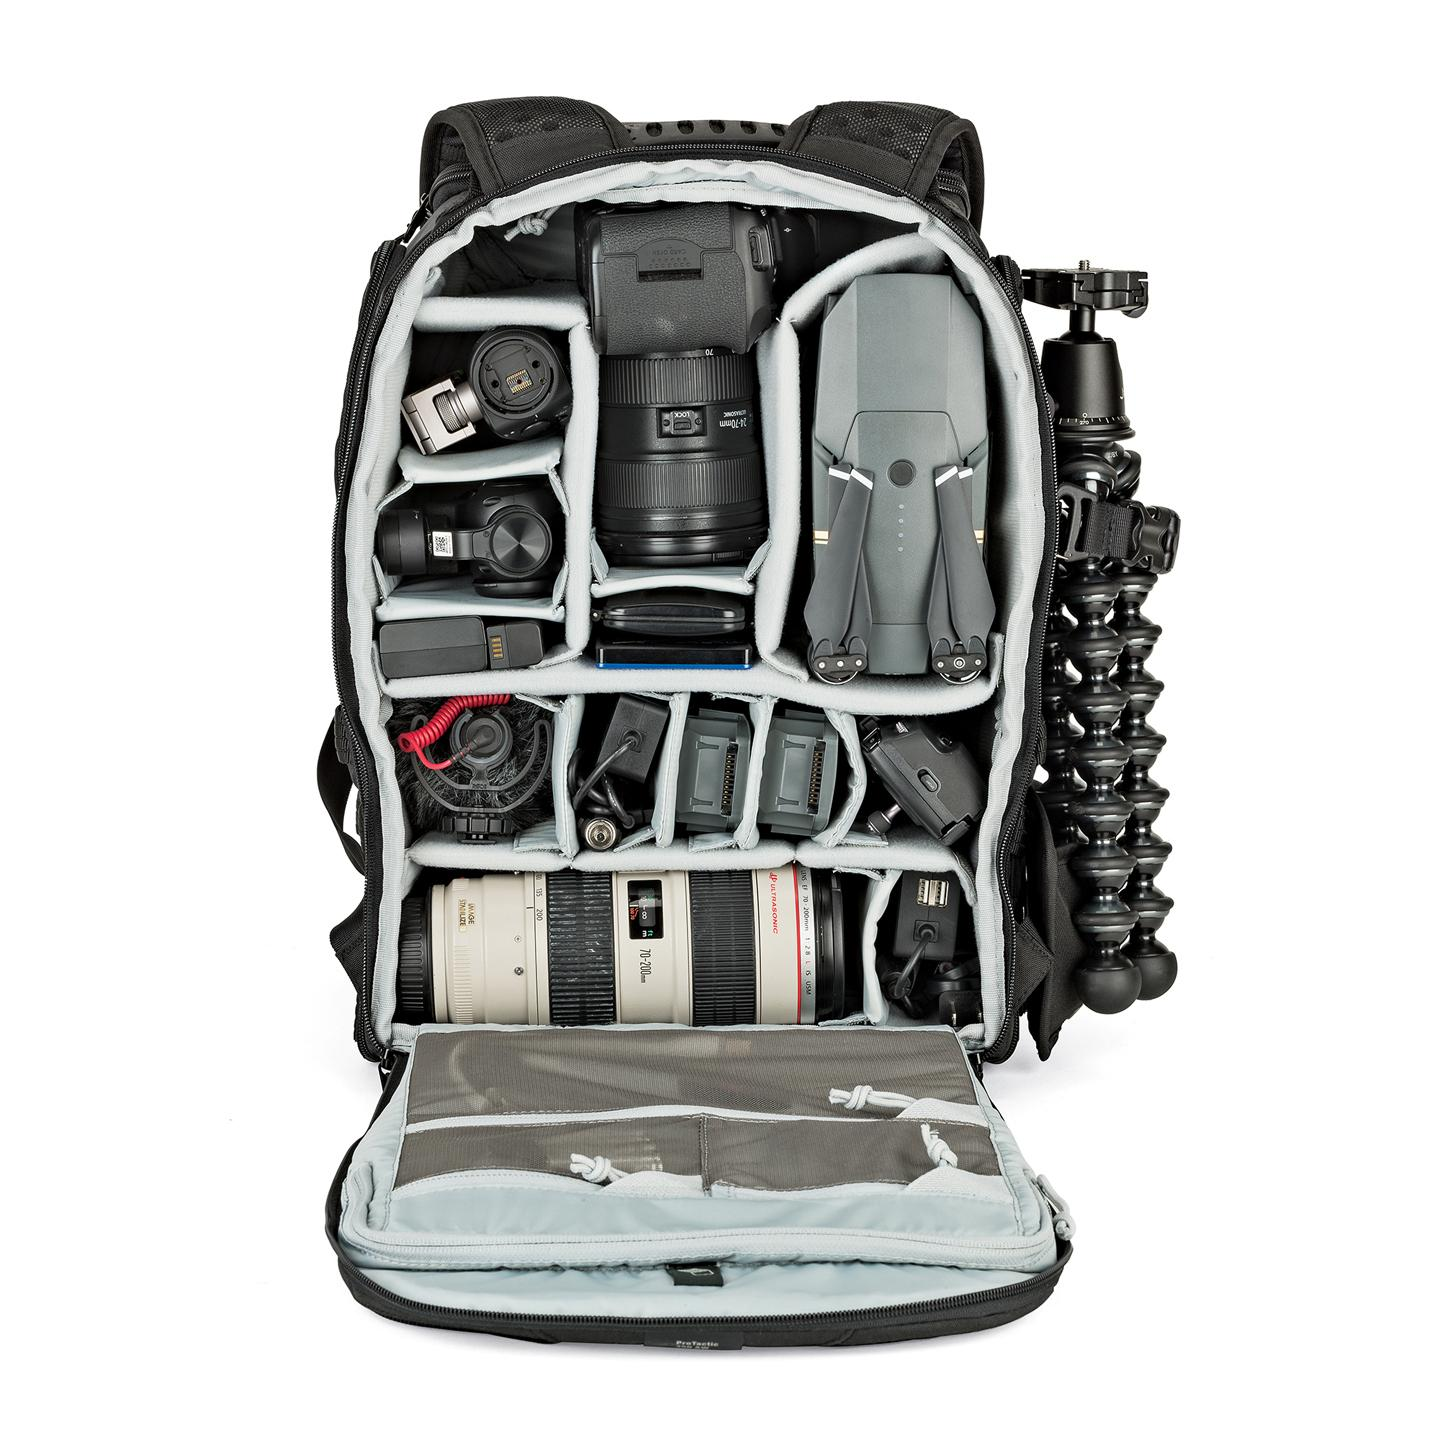 Amazon.com : ProTactic 450 AW Camera Backpack From Lowepro